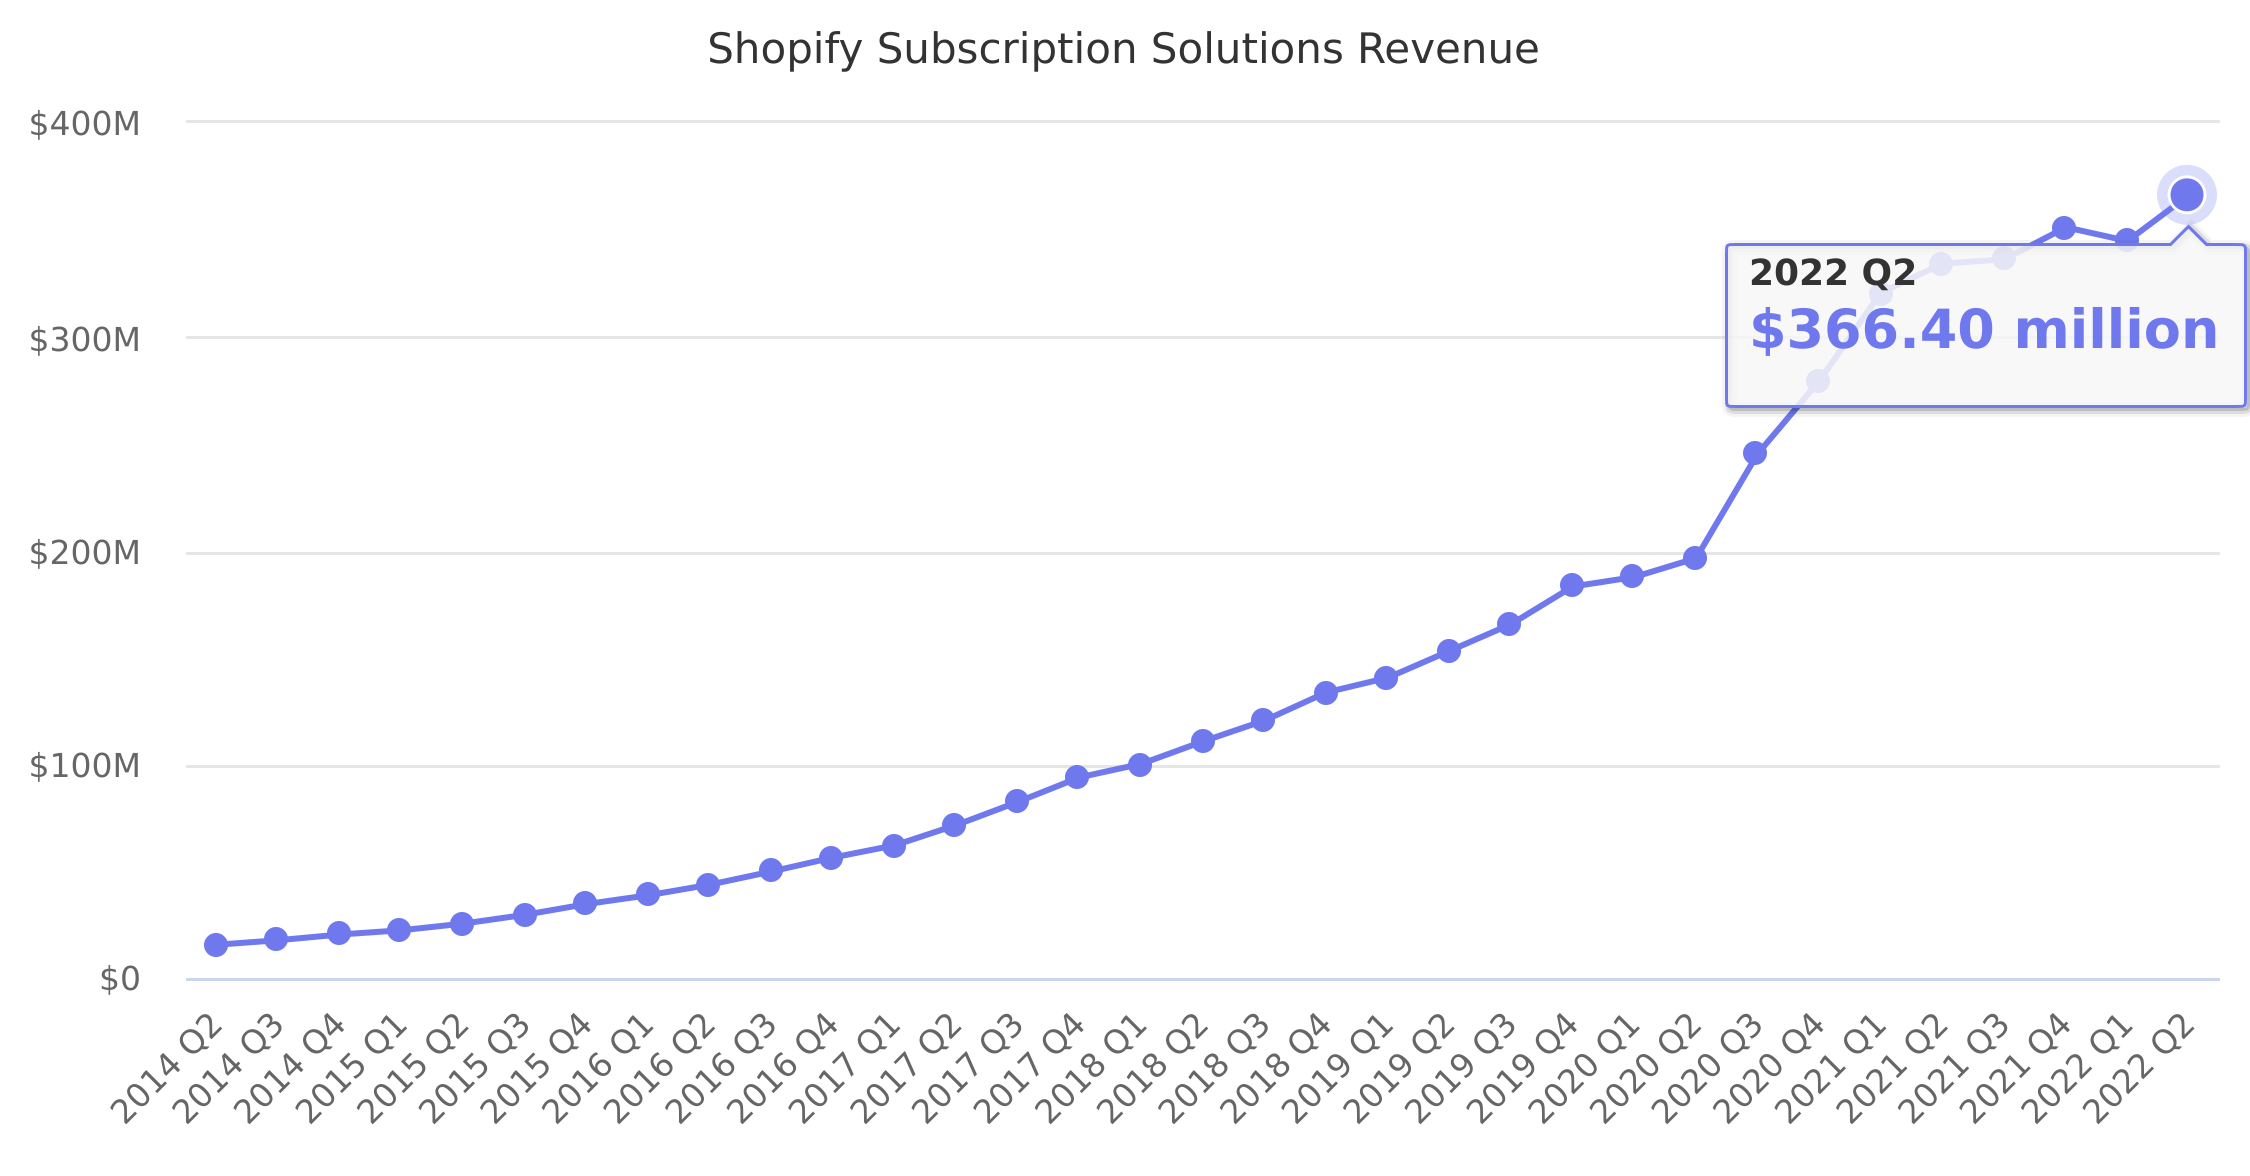 Shopify Subscription Solutions Revenue